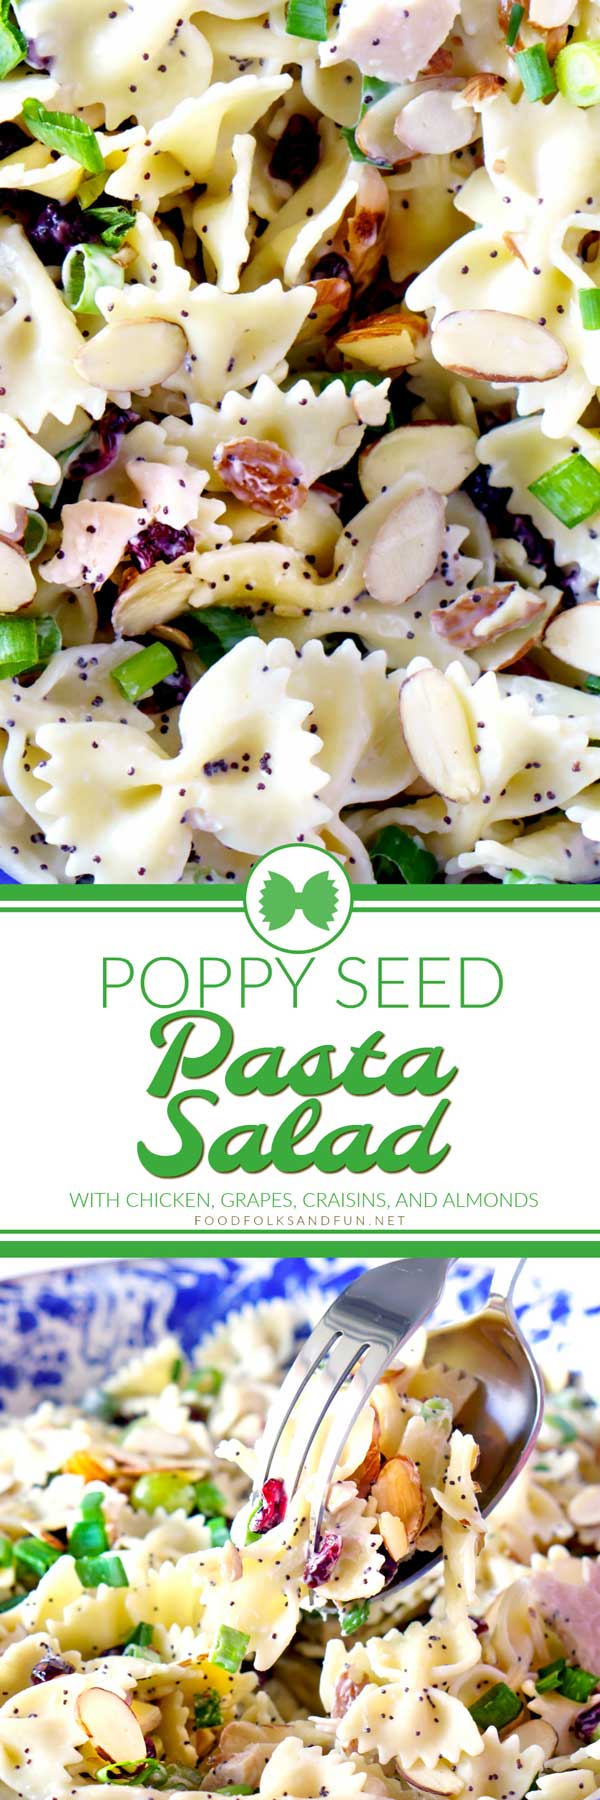 Summer dinner recipe for Poppy Seed Pasta Salad